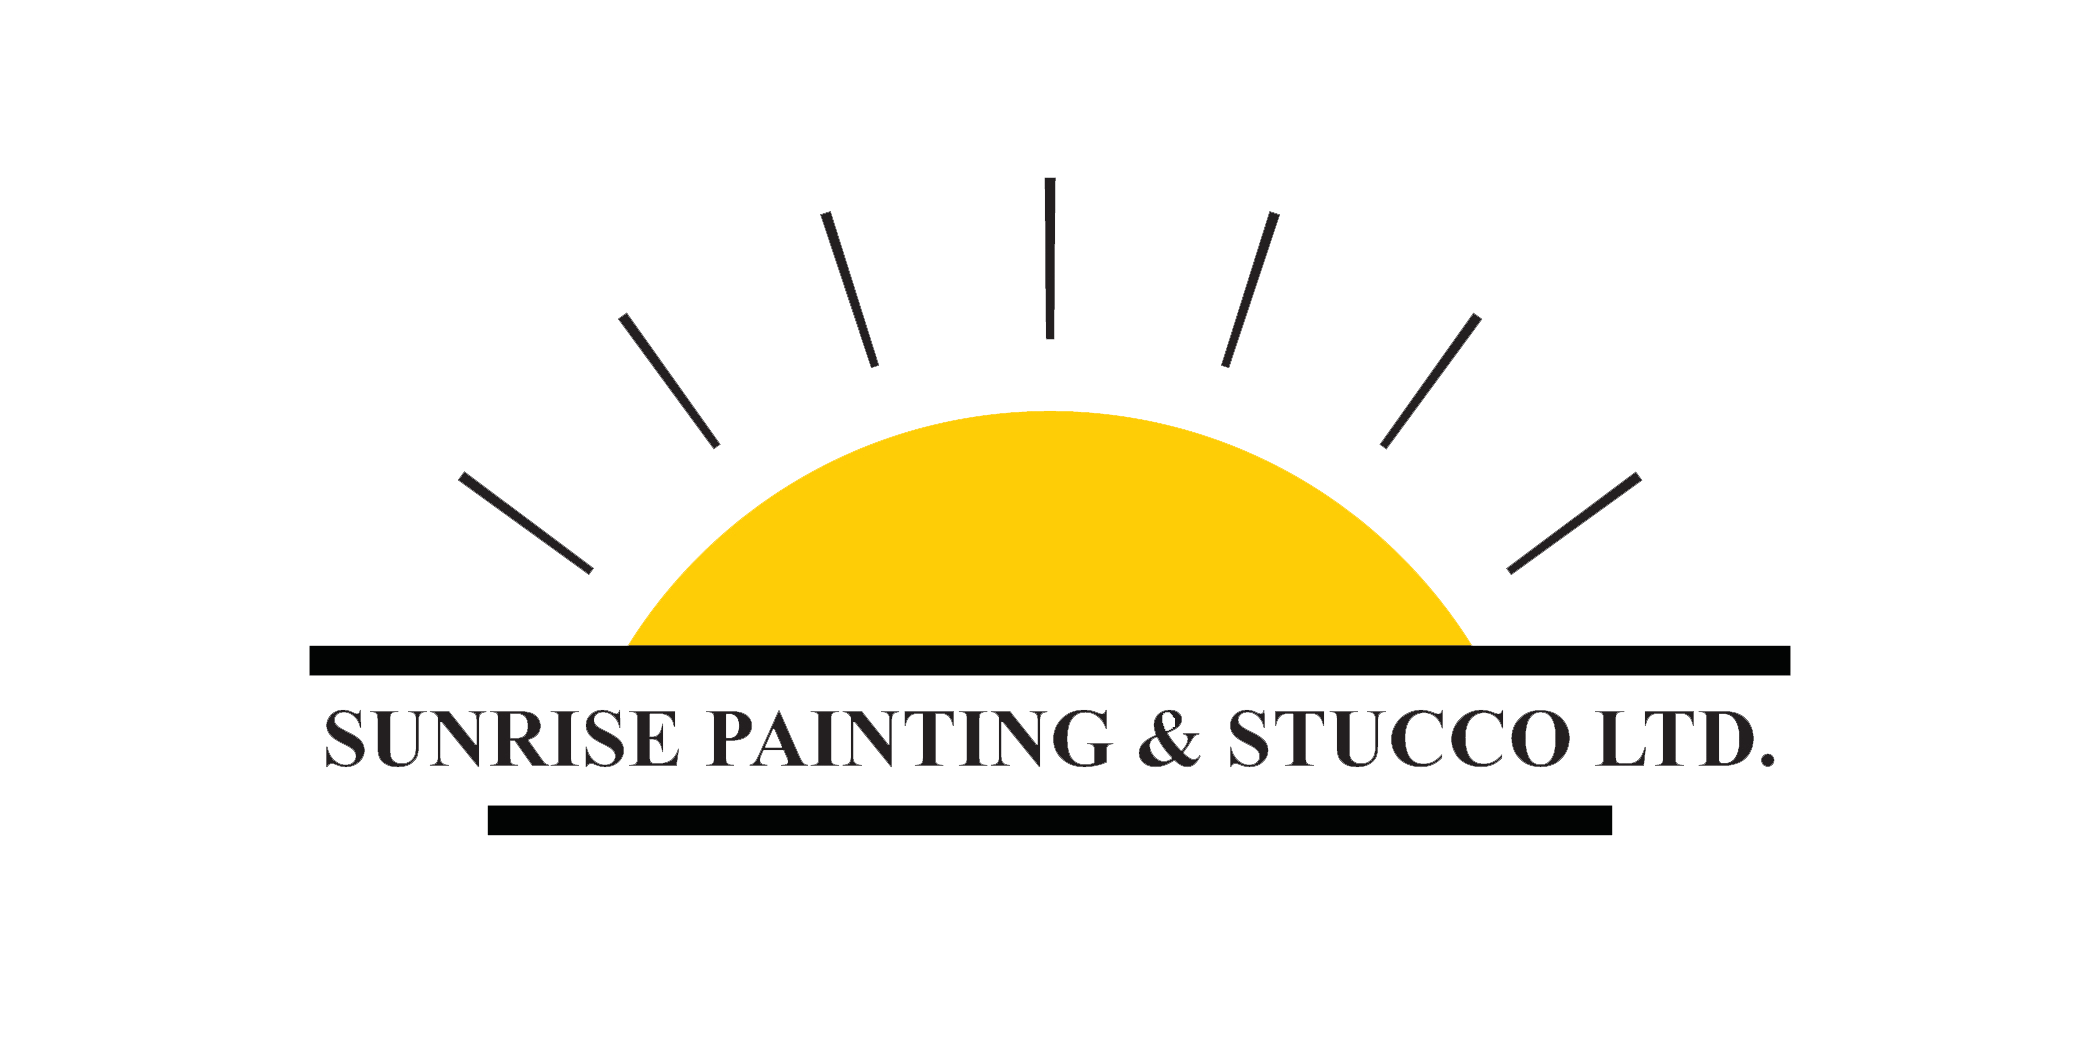 Sunrise Painting & Stucco Ltd's logo